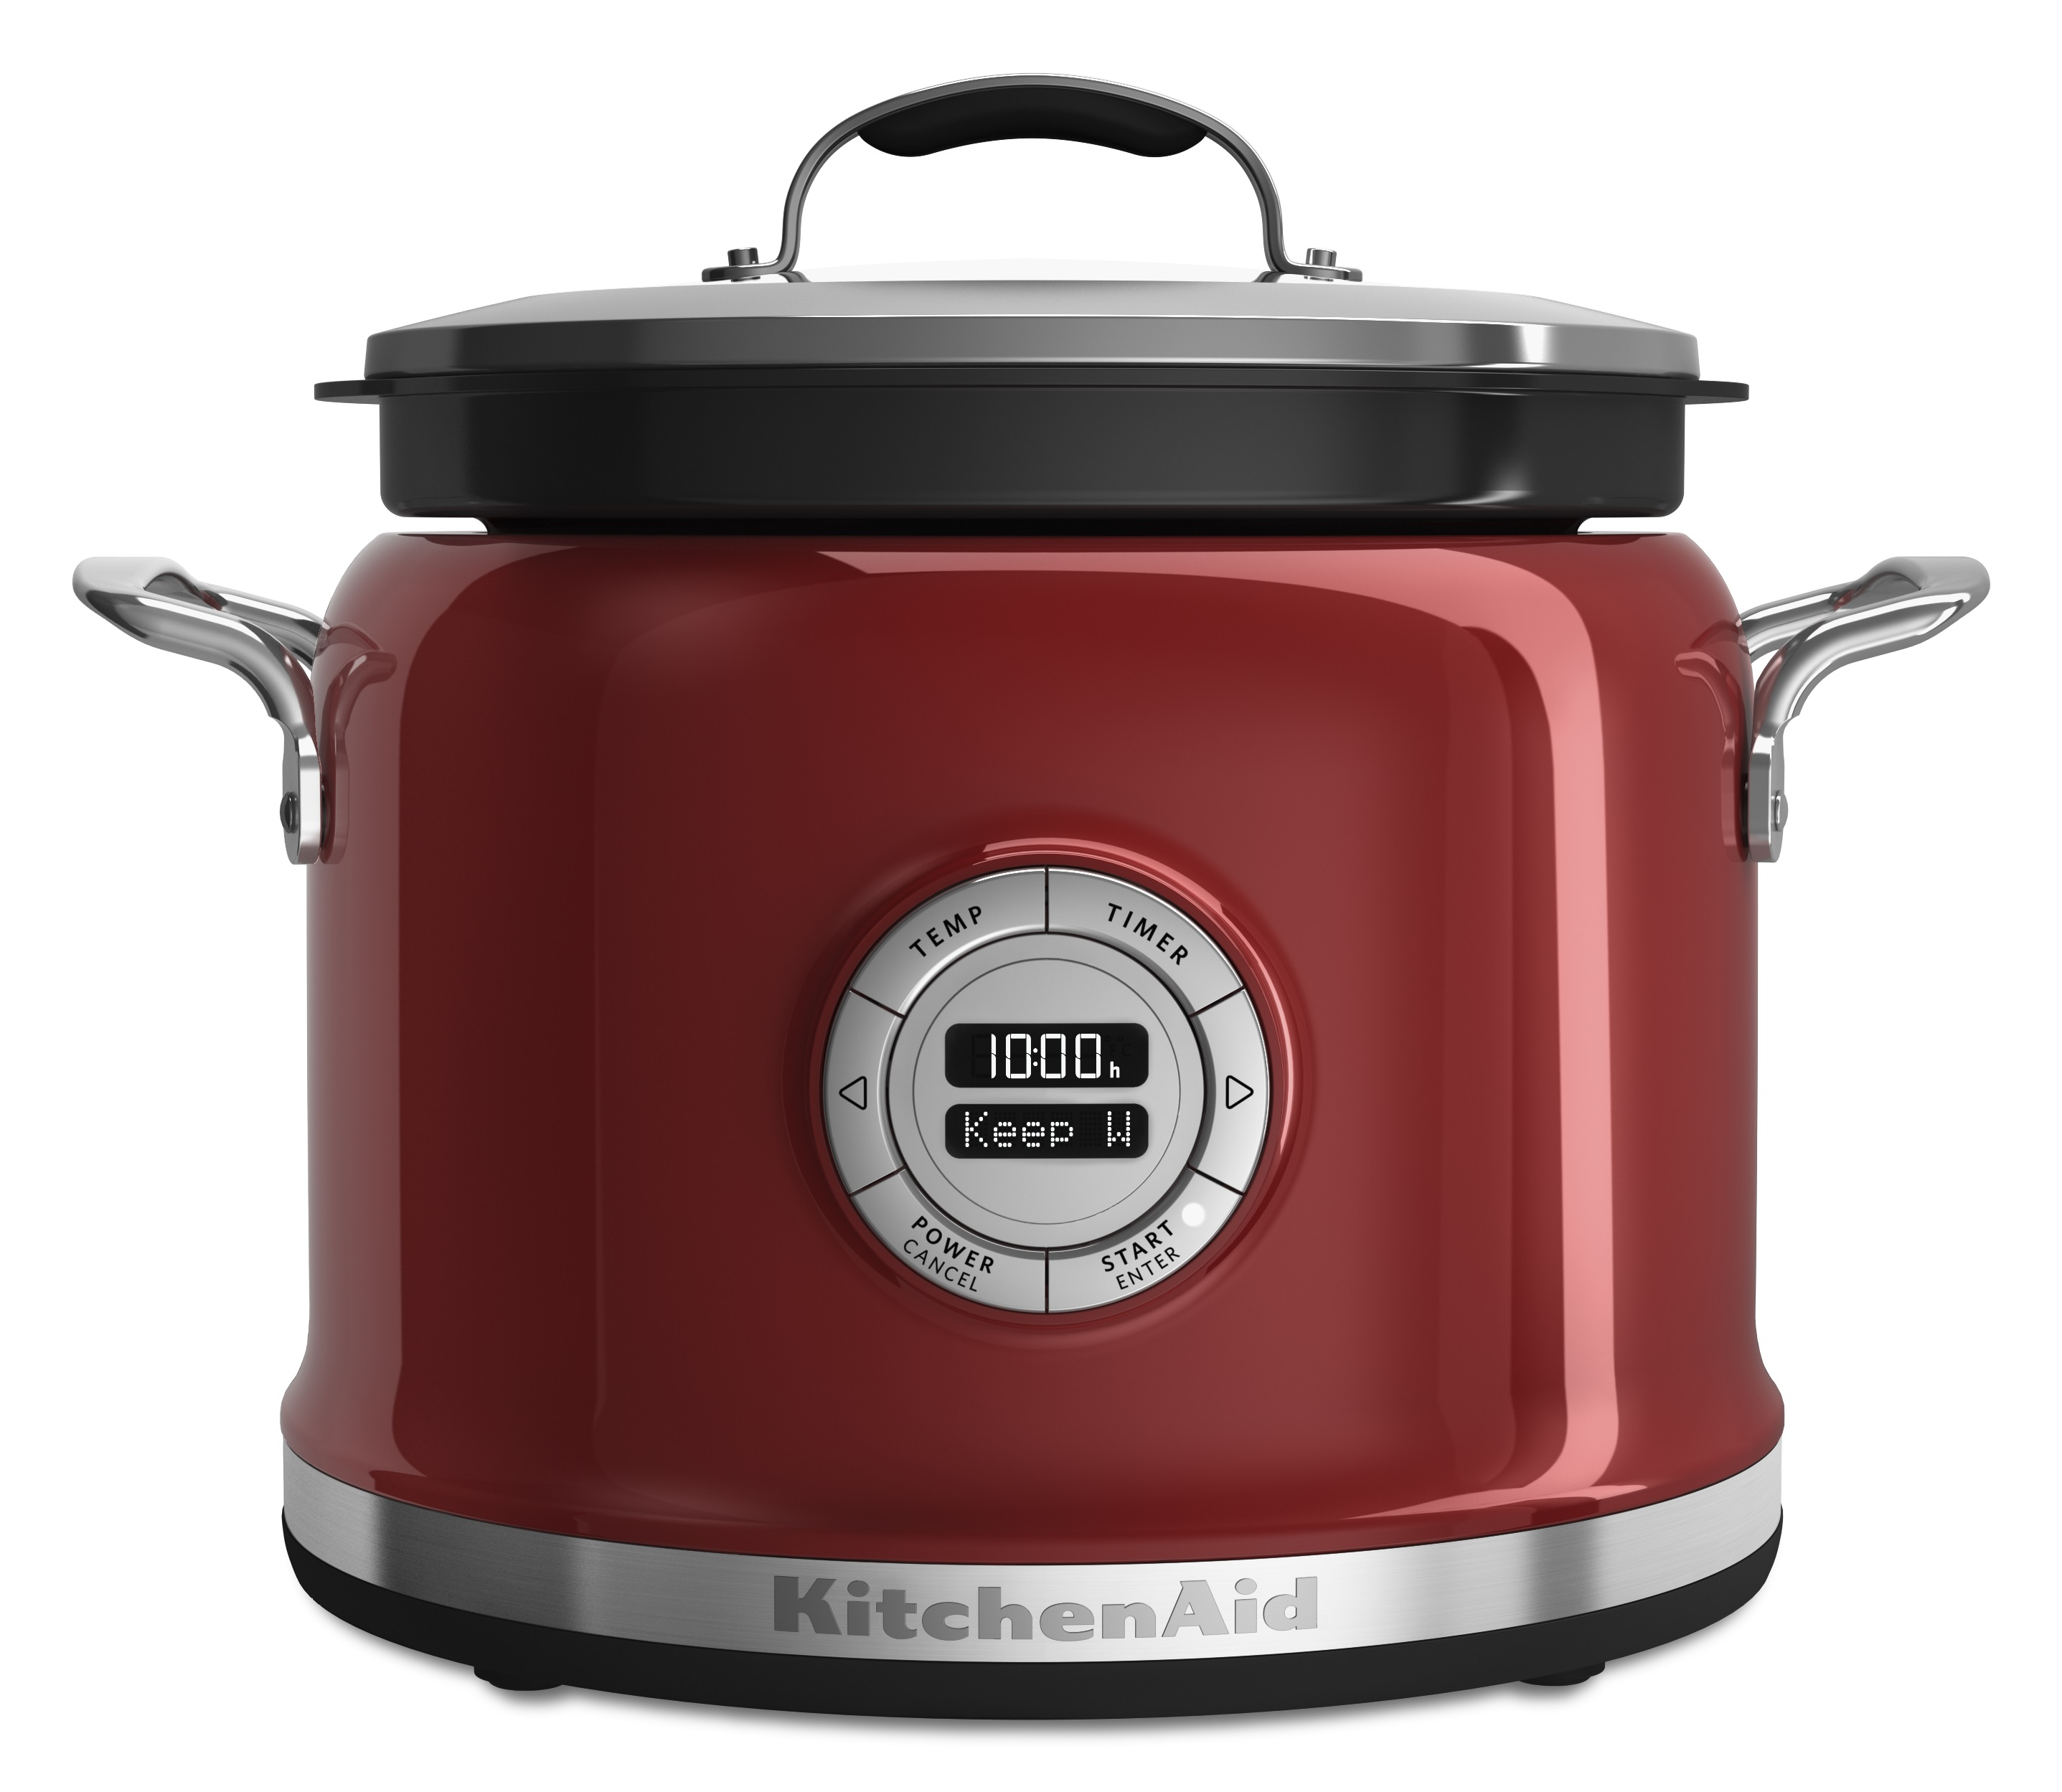 KitchenAid MultiCooker Offers Cooks Extra Help